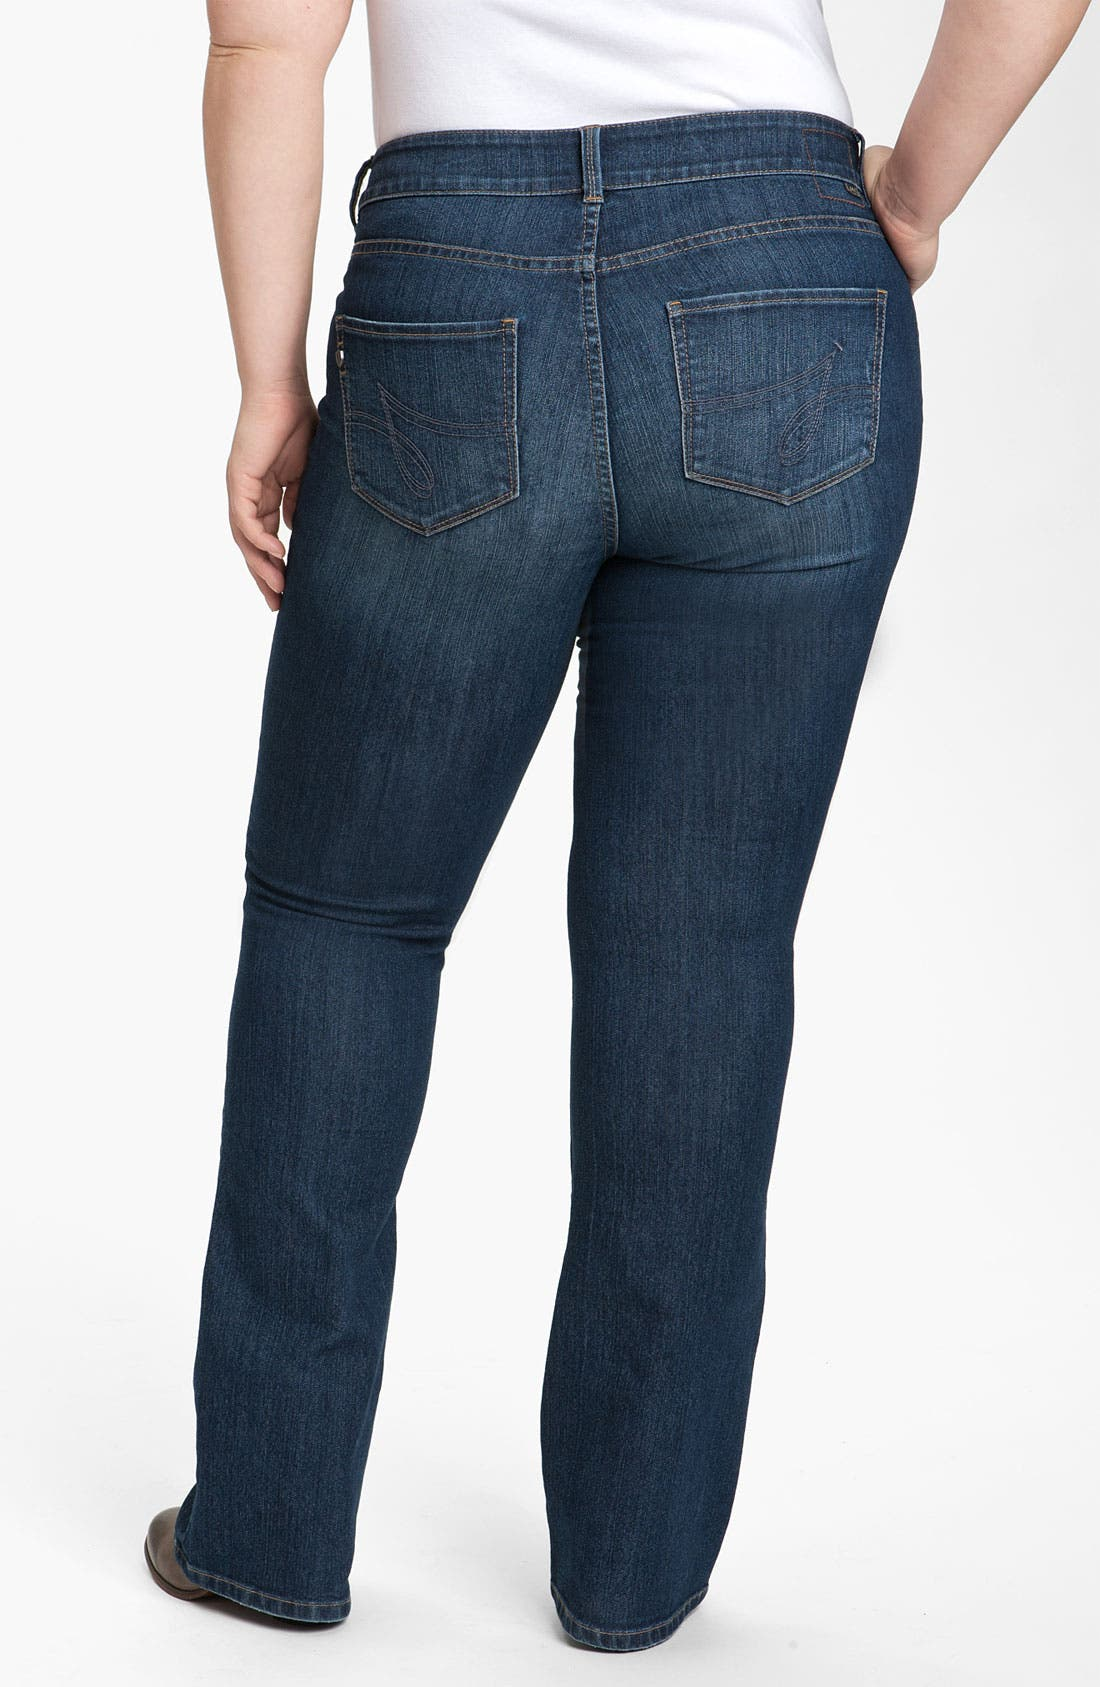 Alternate Image 2  - Jag Jeans 'Lucy' Bootcut Jeans (Petite Plus) (Online Exclusive)